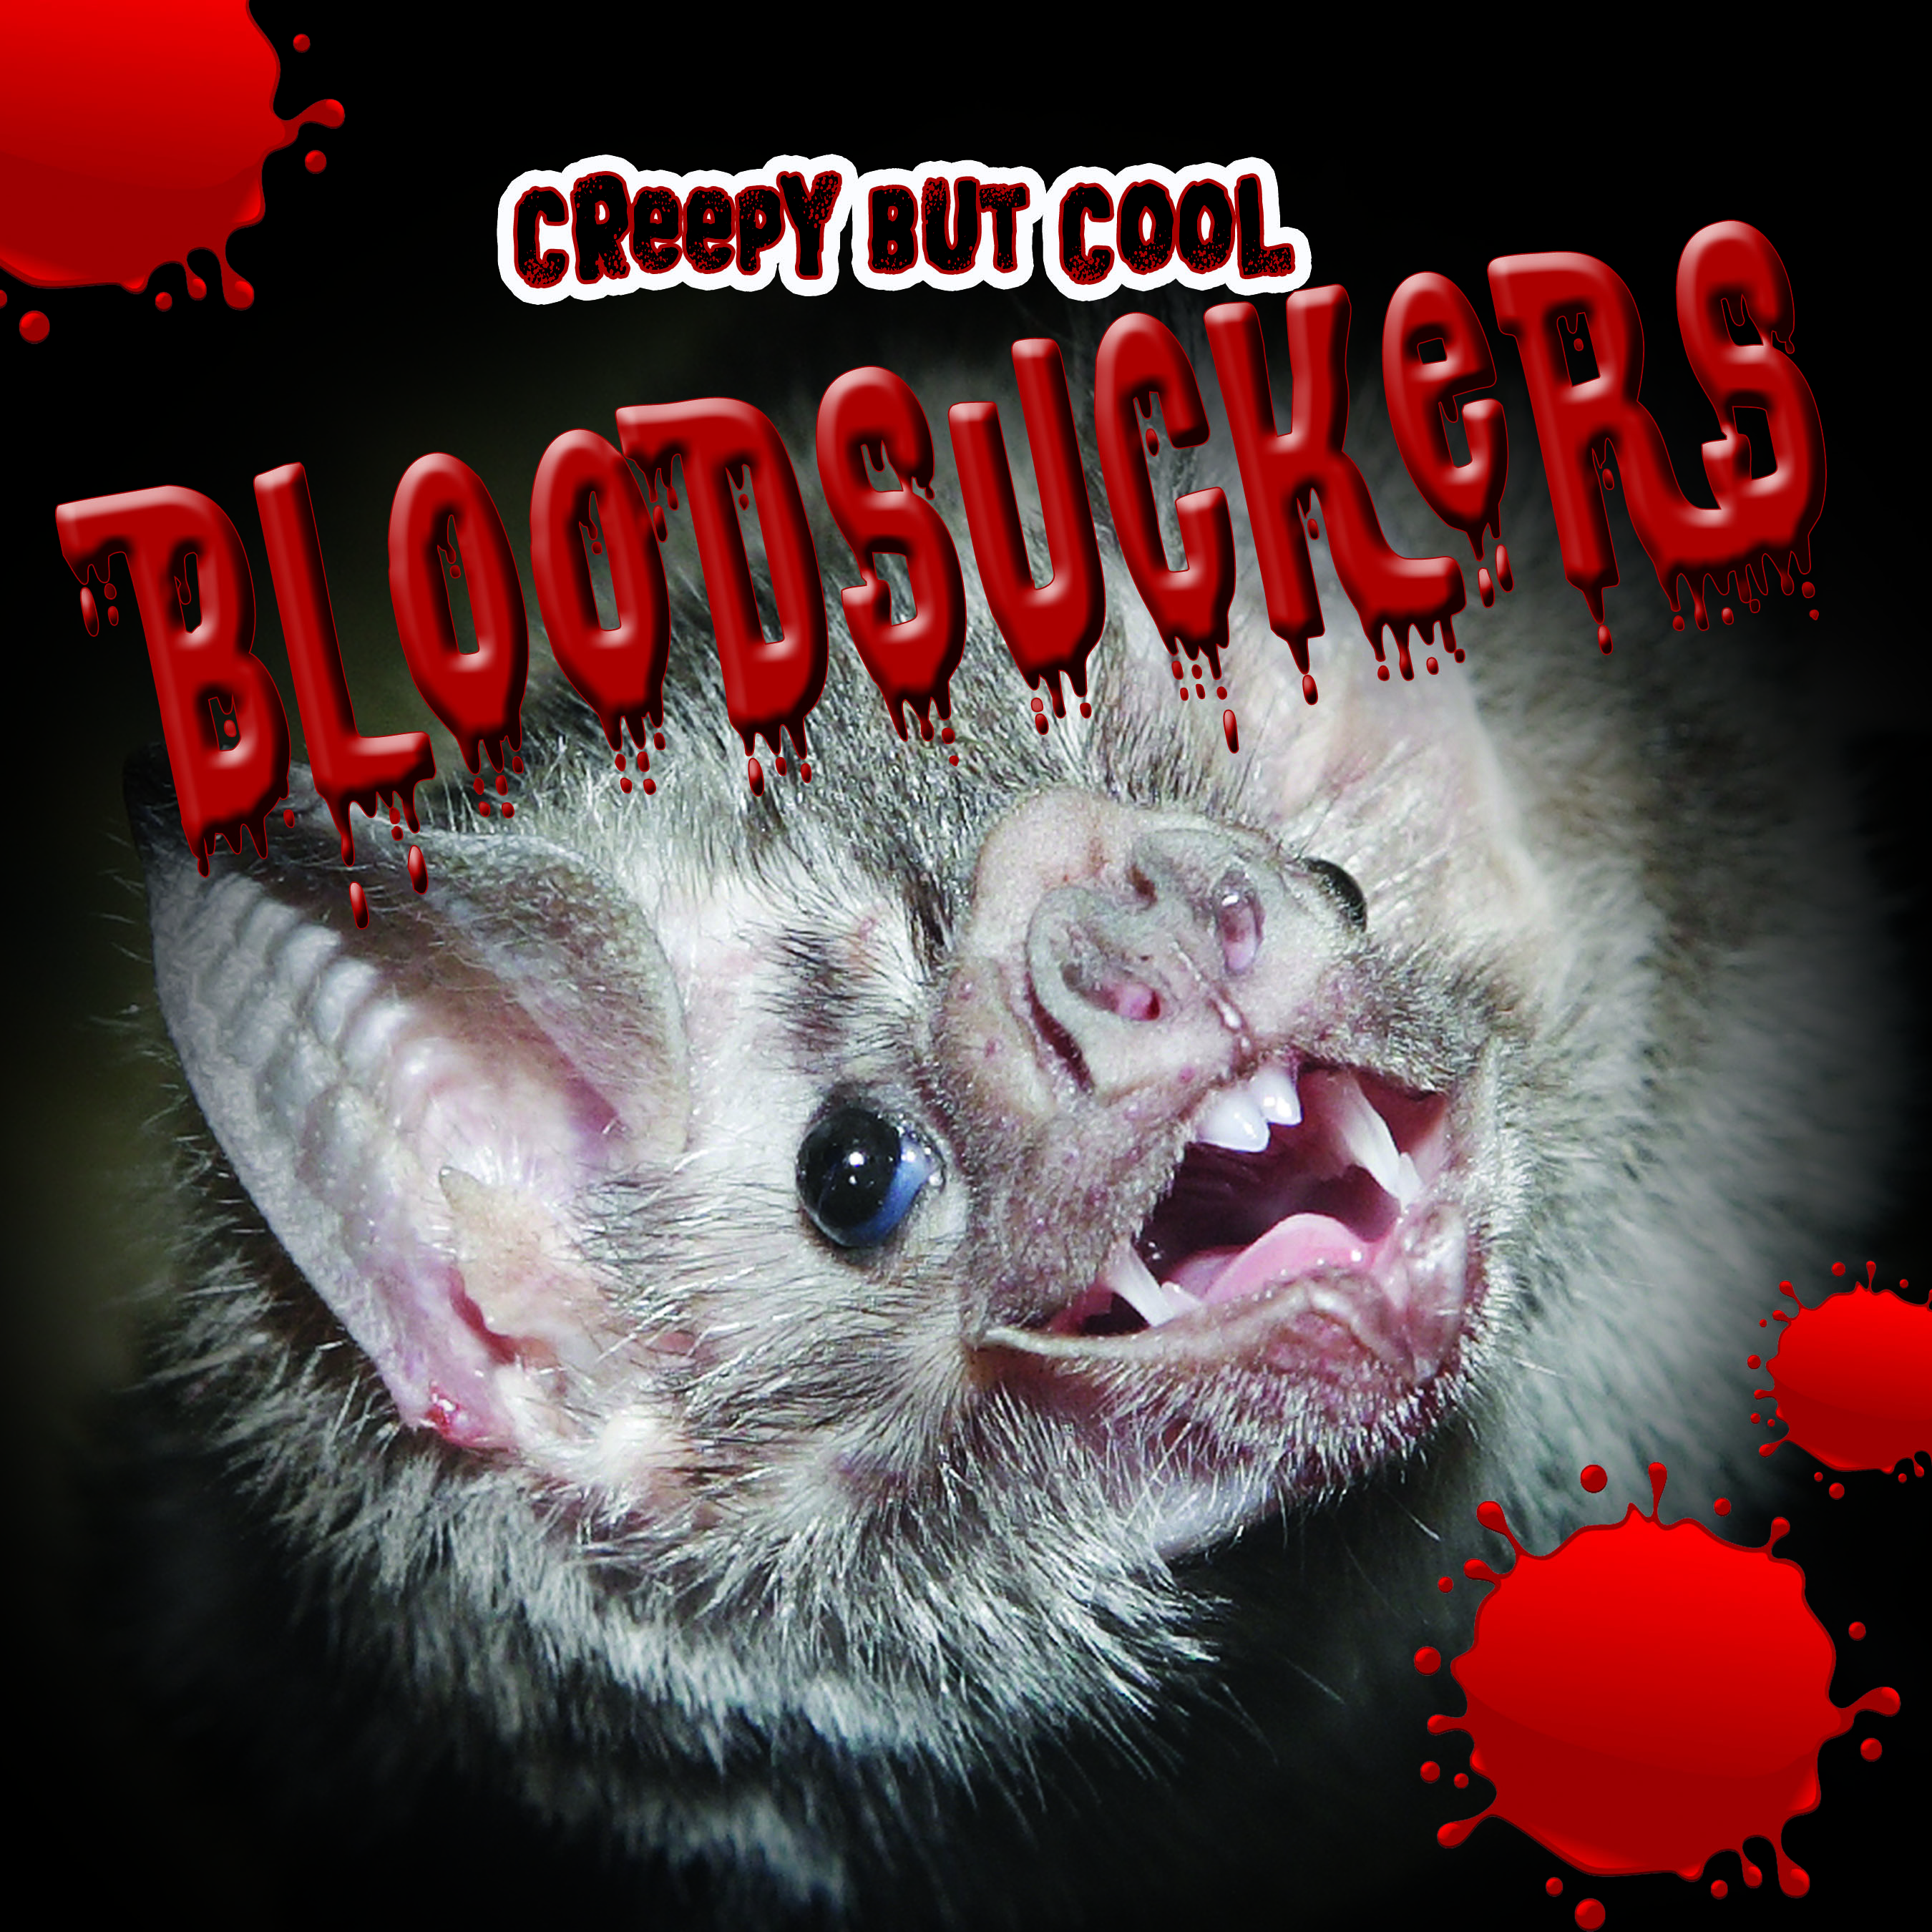 Creepy But Cool Bloodsuckers